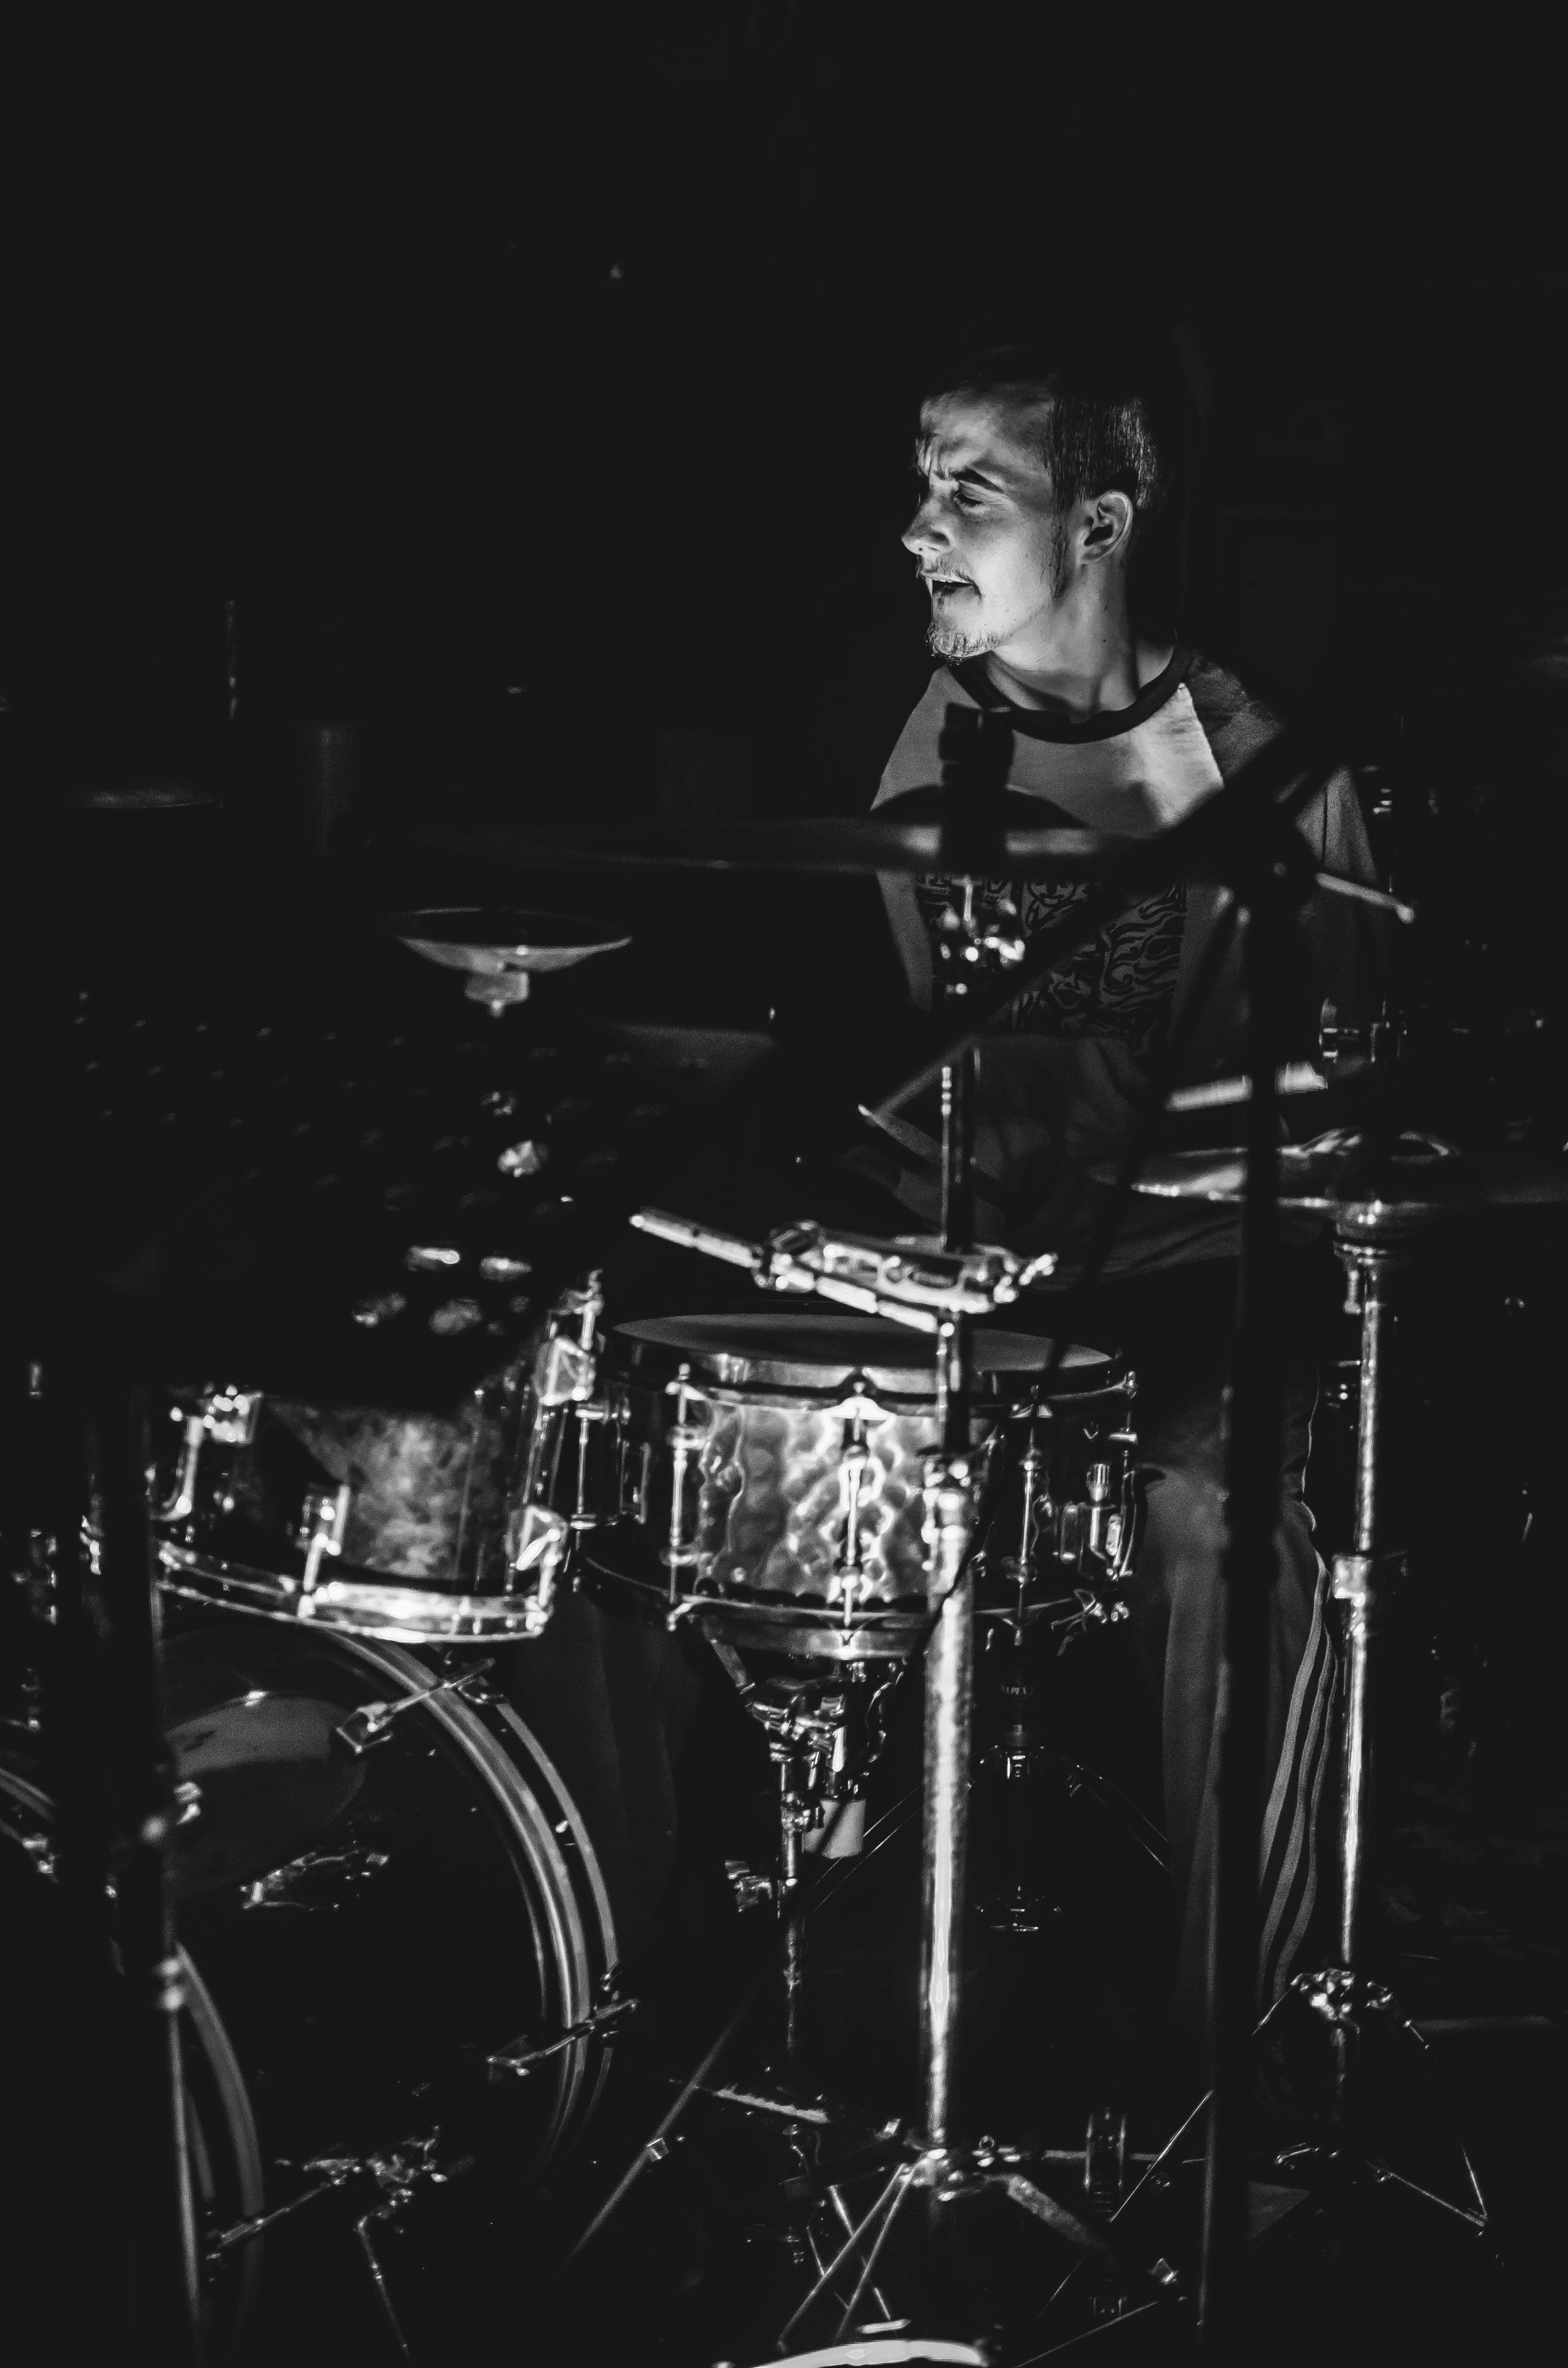 Chris is pretty great on drums too!